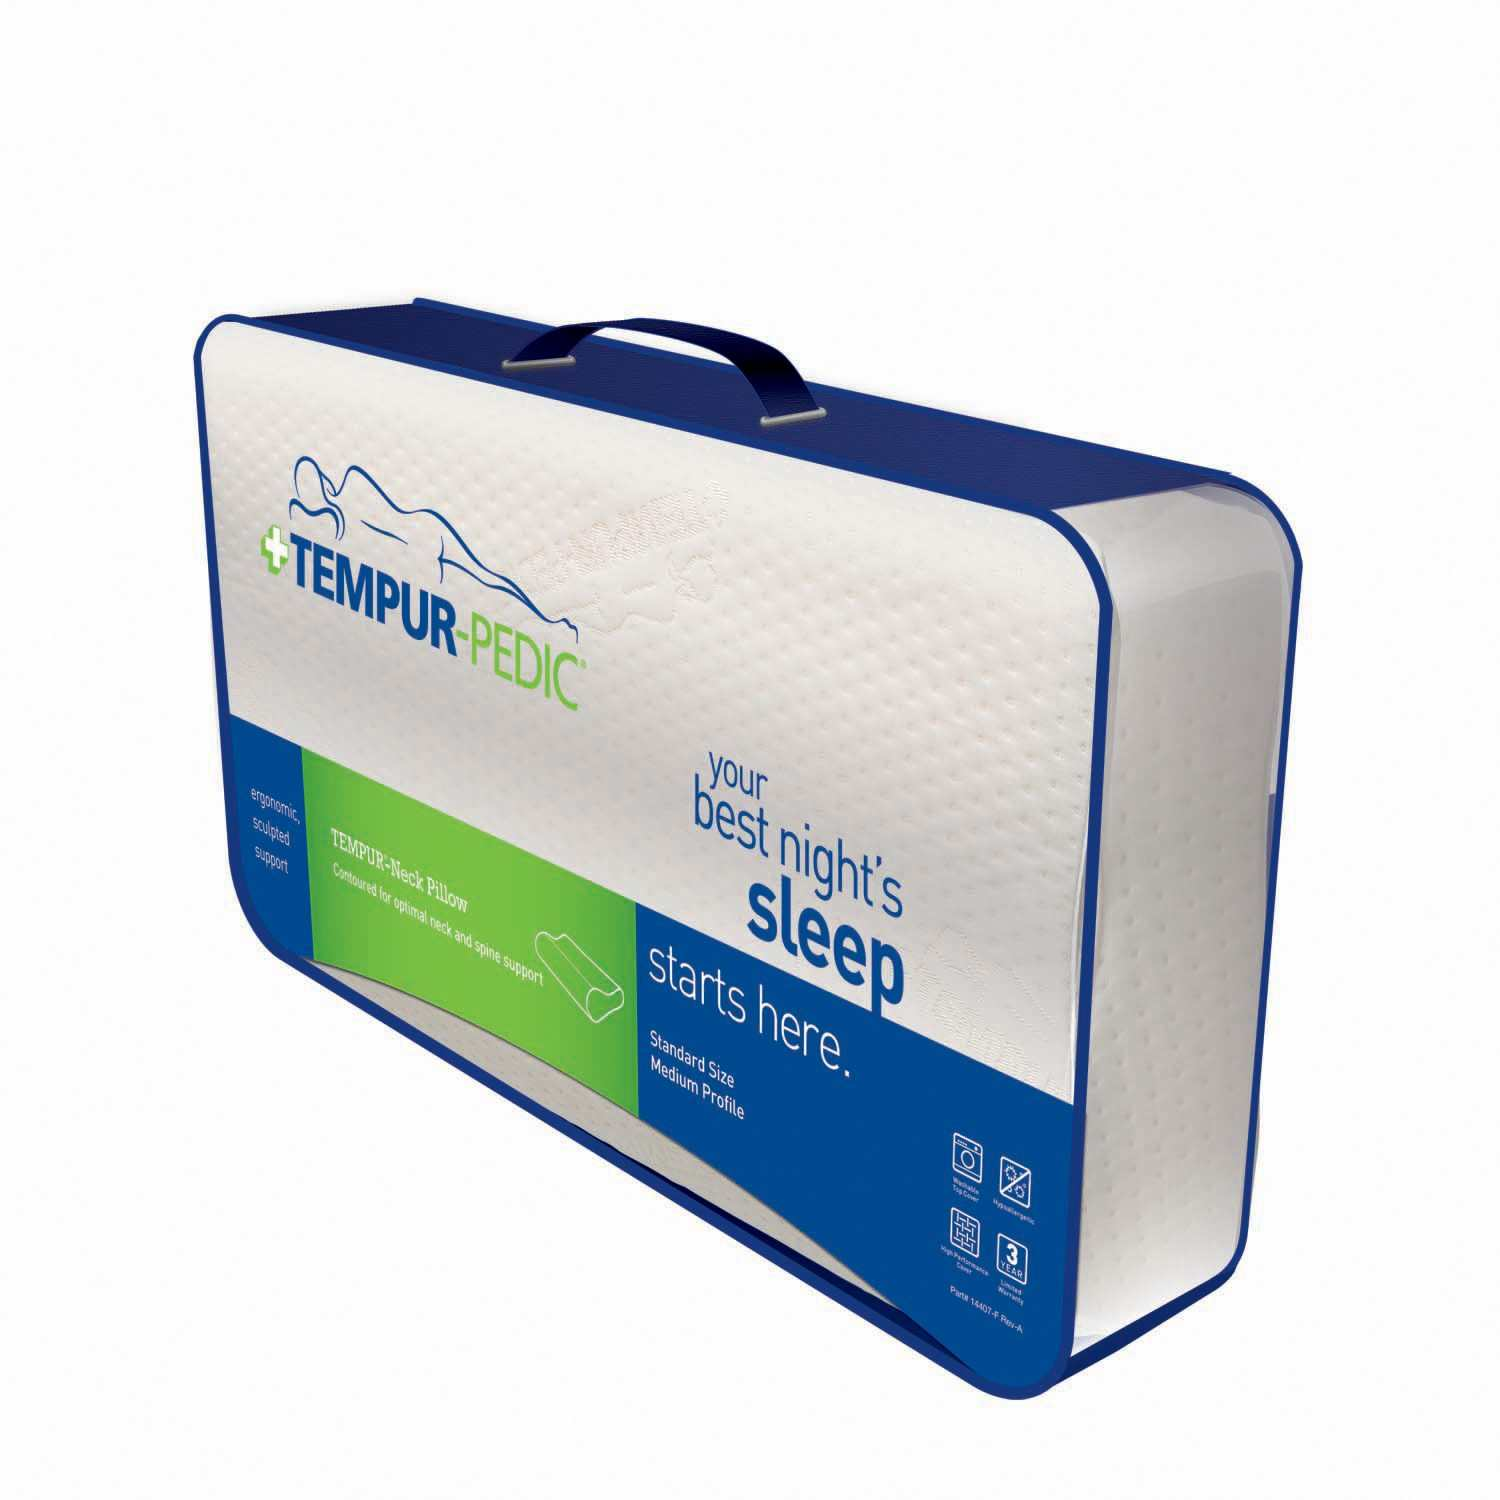 Tempur-Pedic Neck Pillow